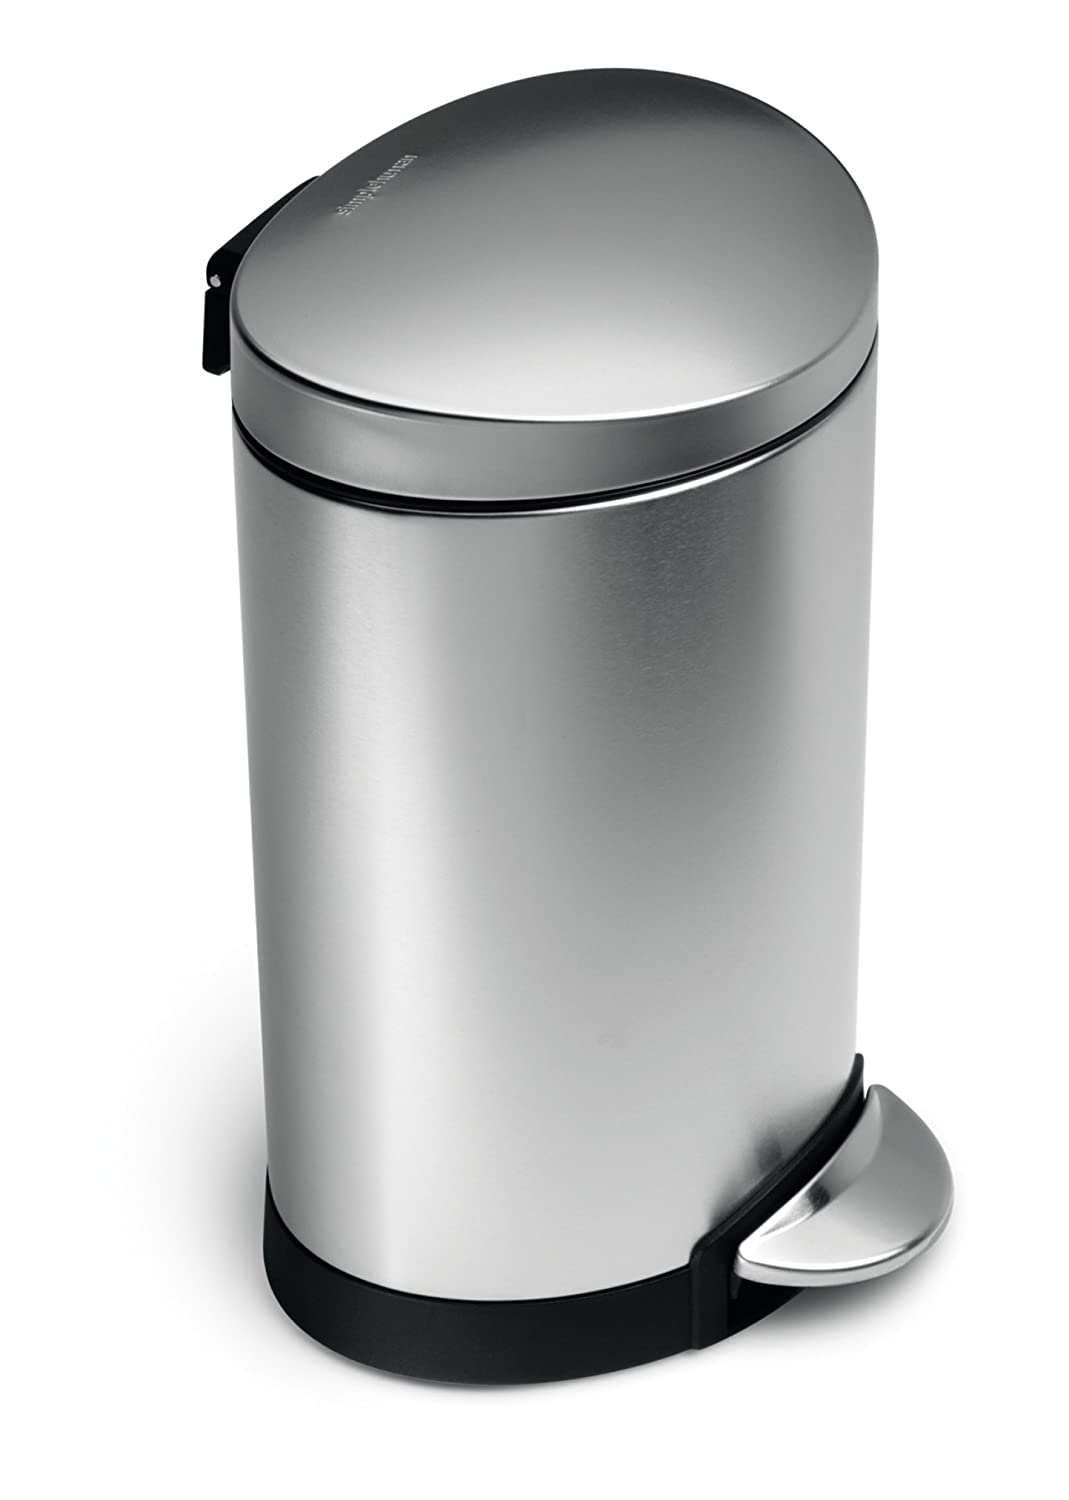 Small Metal Trash Cans With Lids Stainless Steel Kitchen Trash Can Garbage Waste Bin Pedal